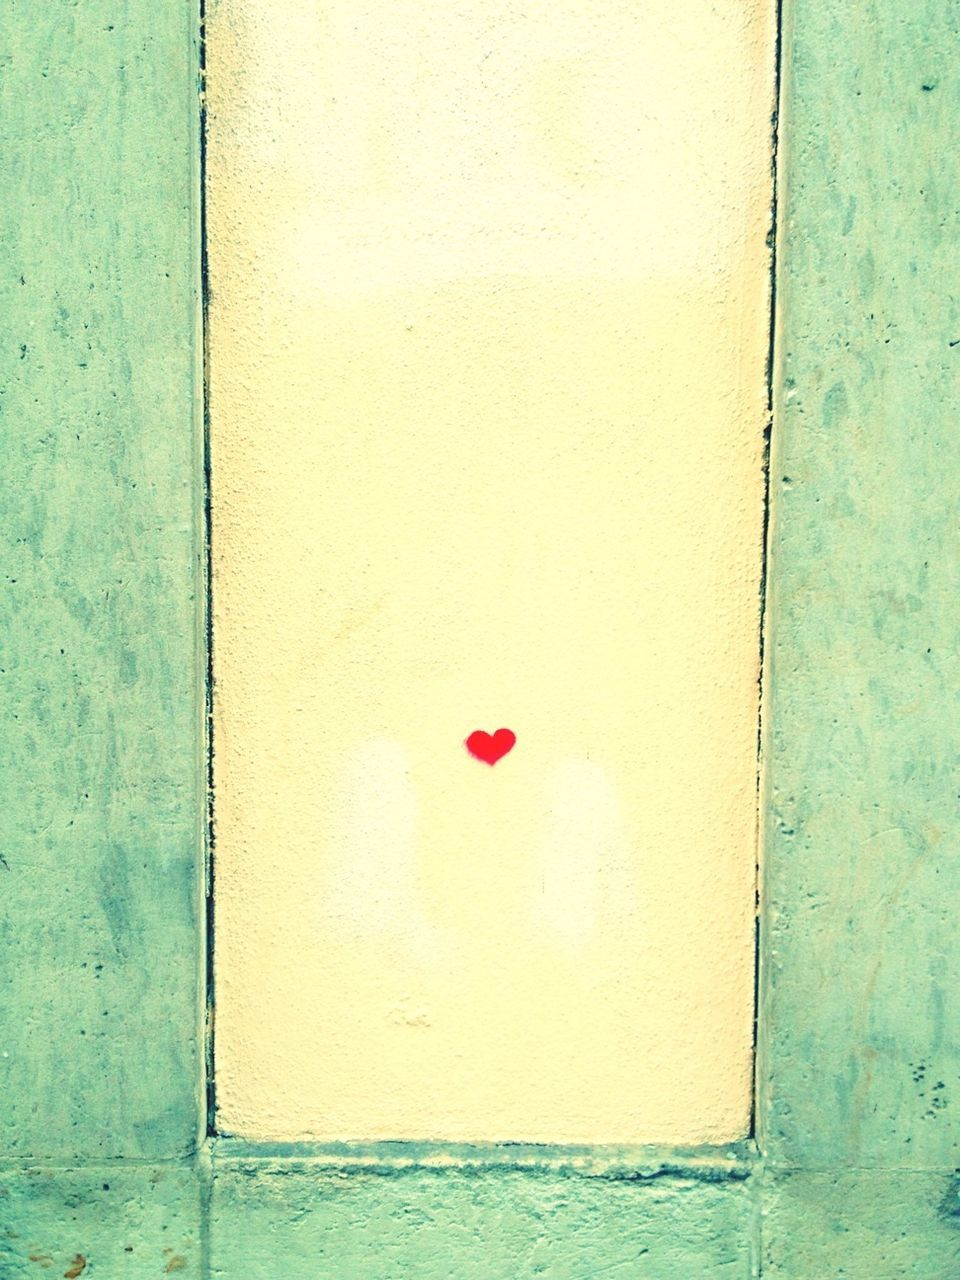 Little red heart on wall